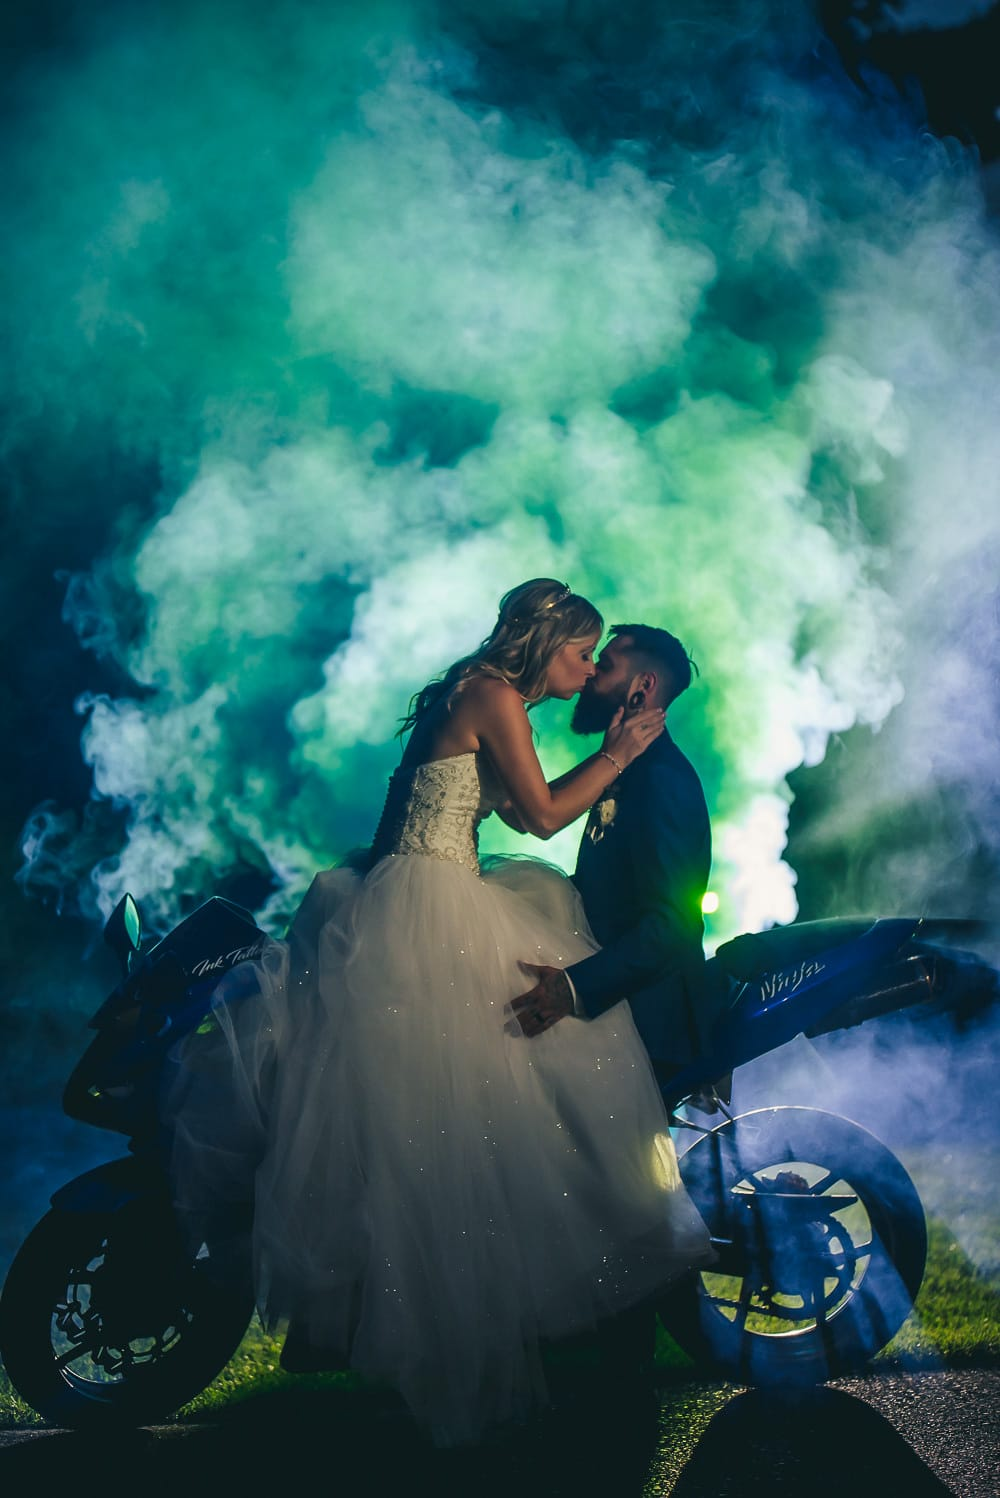 smoke grenade wedding photo with motorcycle at craigowan golf club